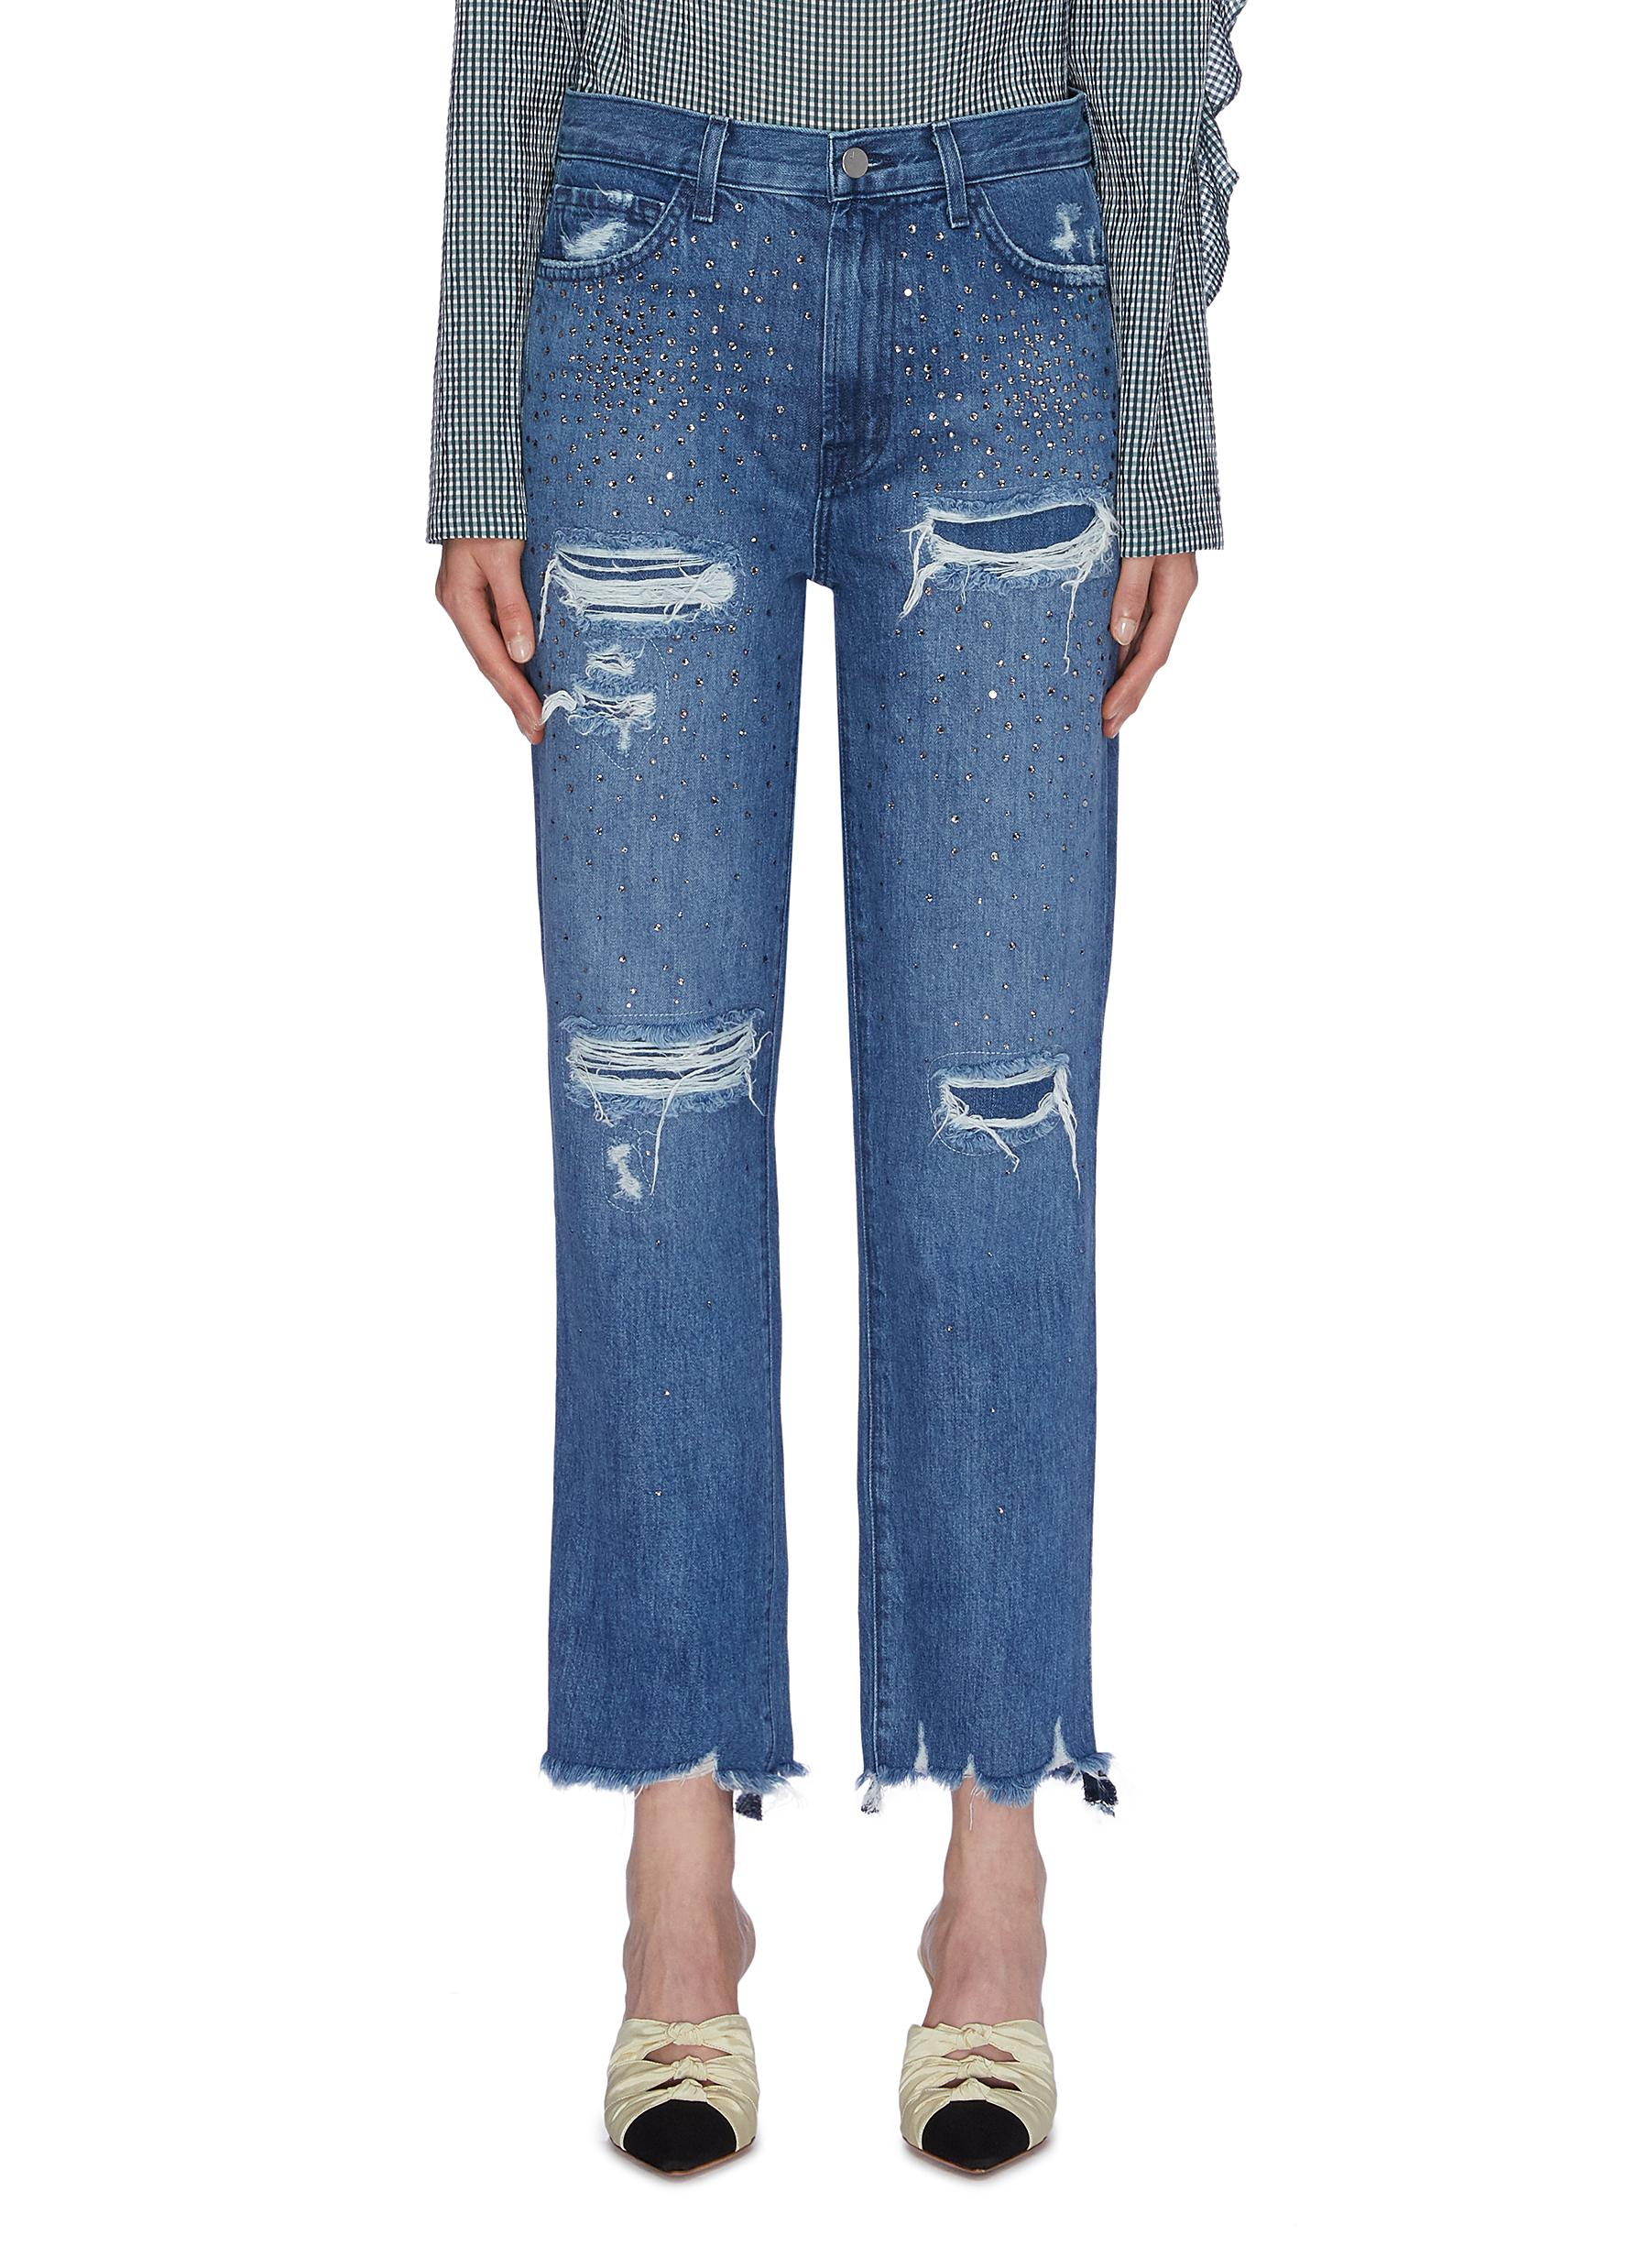 Jules strass ripped straight leg jeans by J Brand